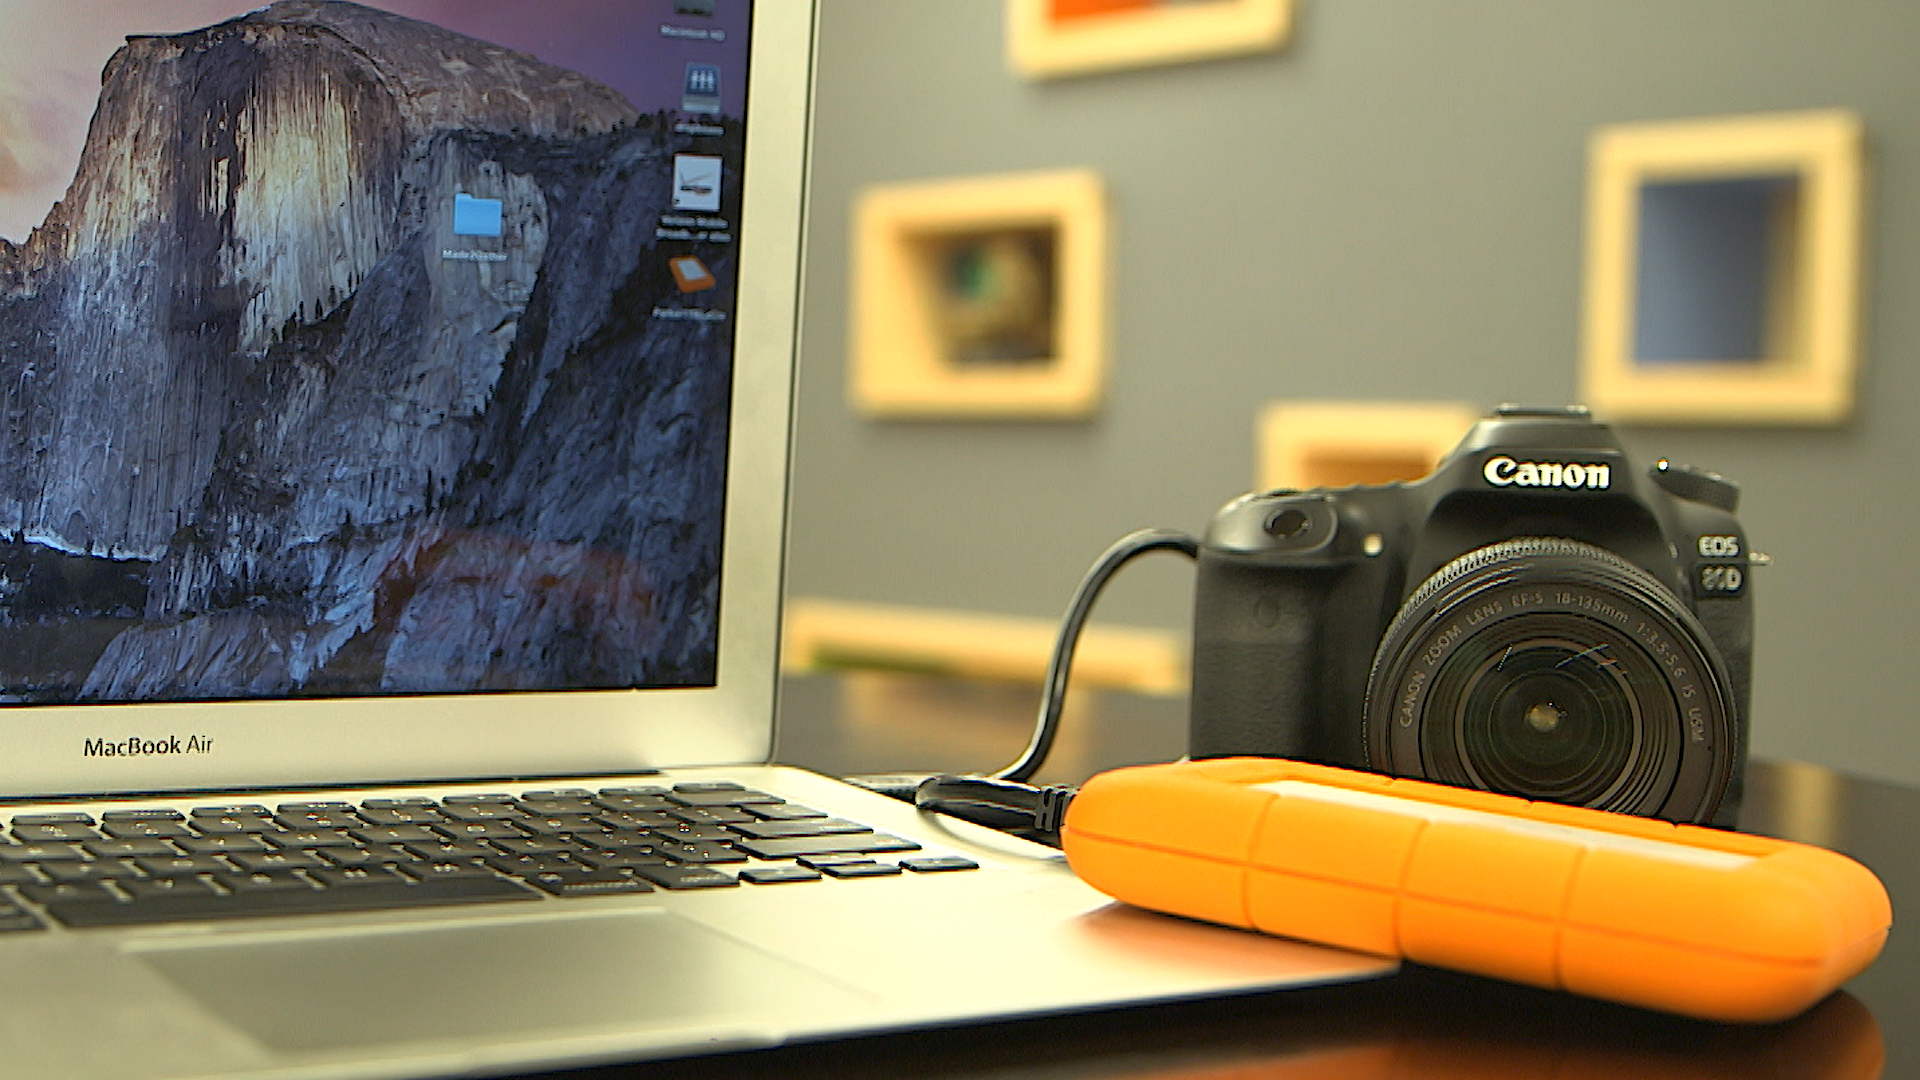 Video: How to back up photos when traveling